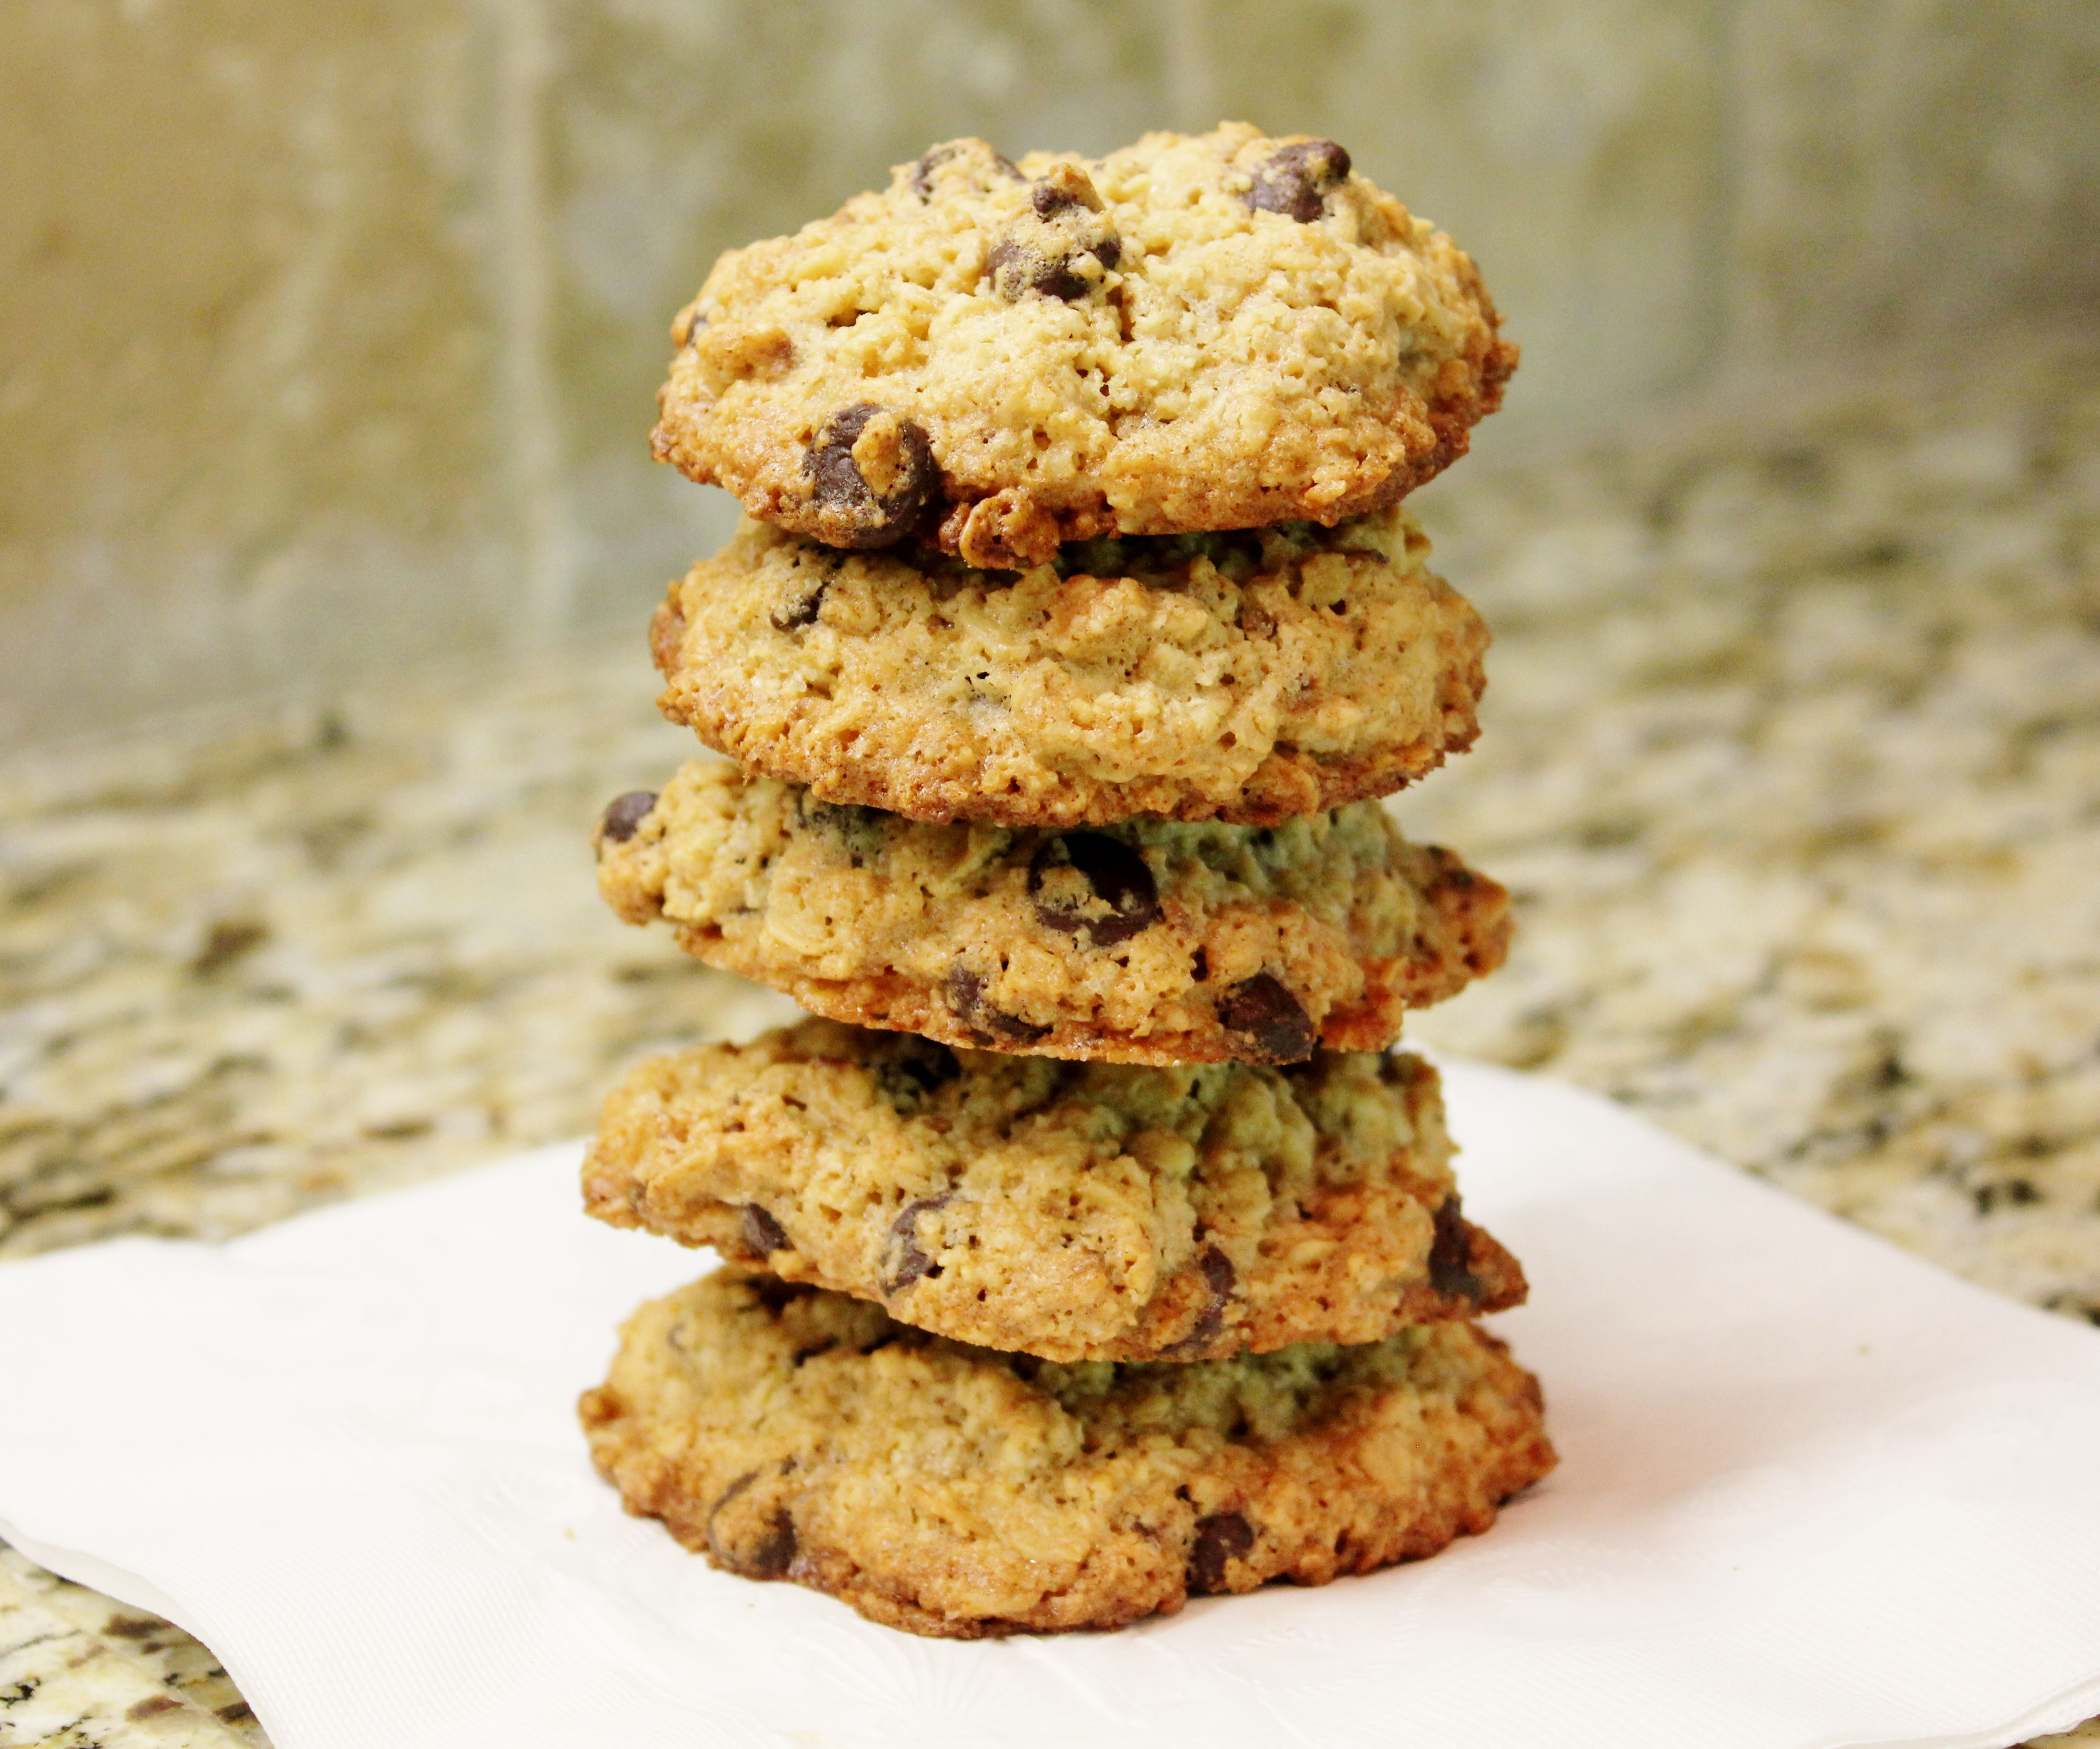 Old Fashioned Oatmeal Chocolate Chip Cookies (gluten free)